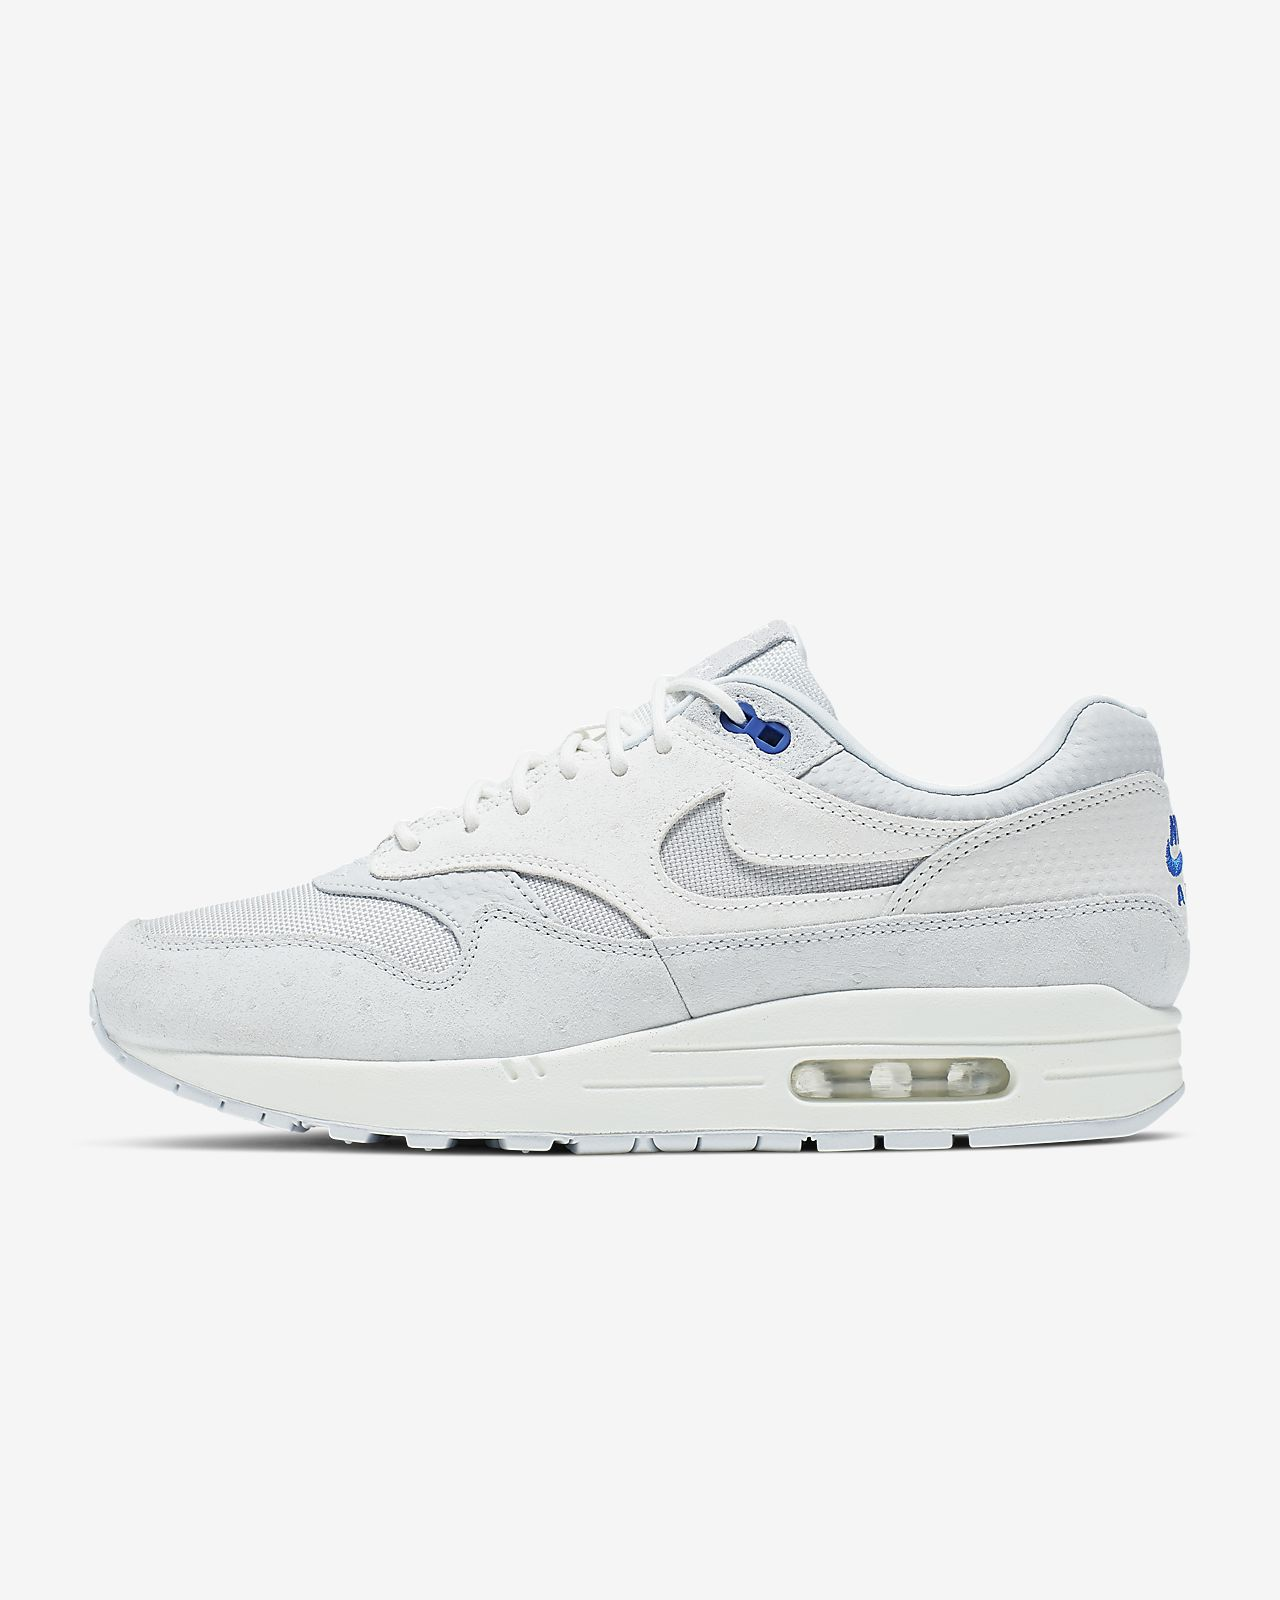 1e11192e28 Nike Air Max 1 Premium Men's Shoe